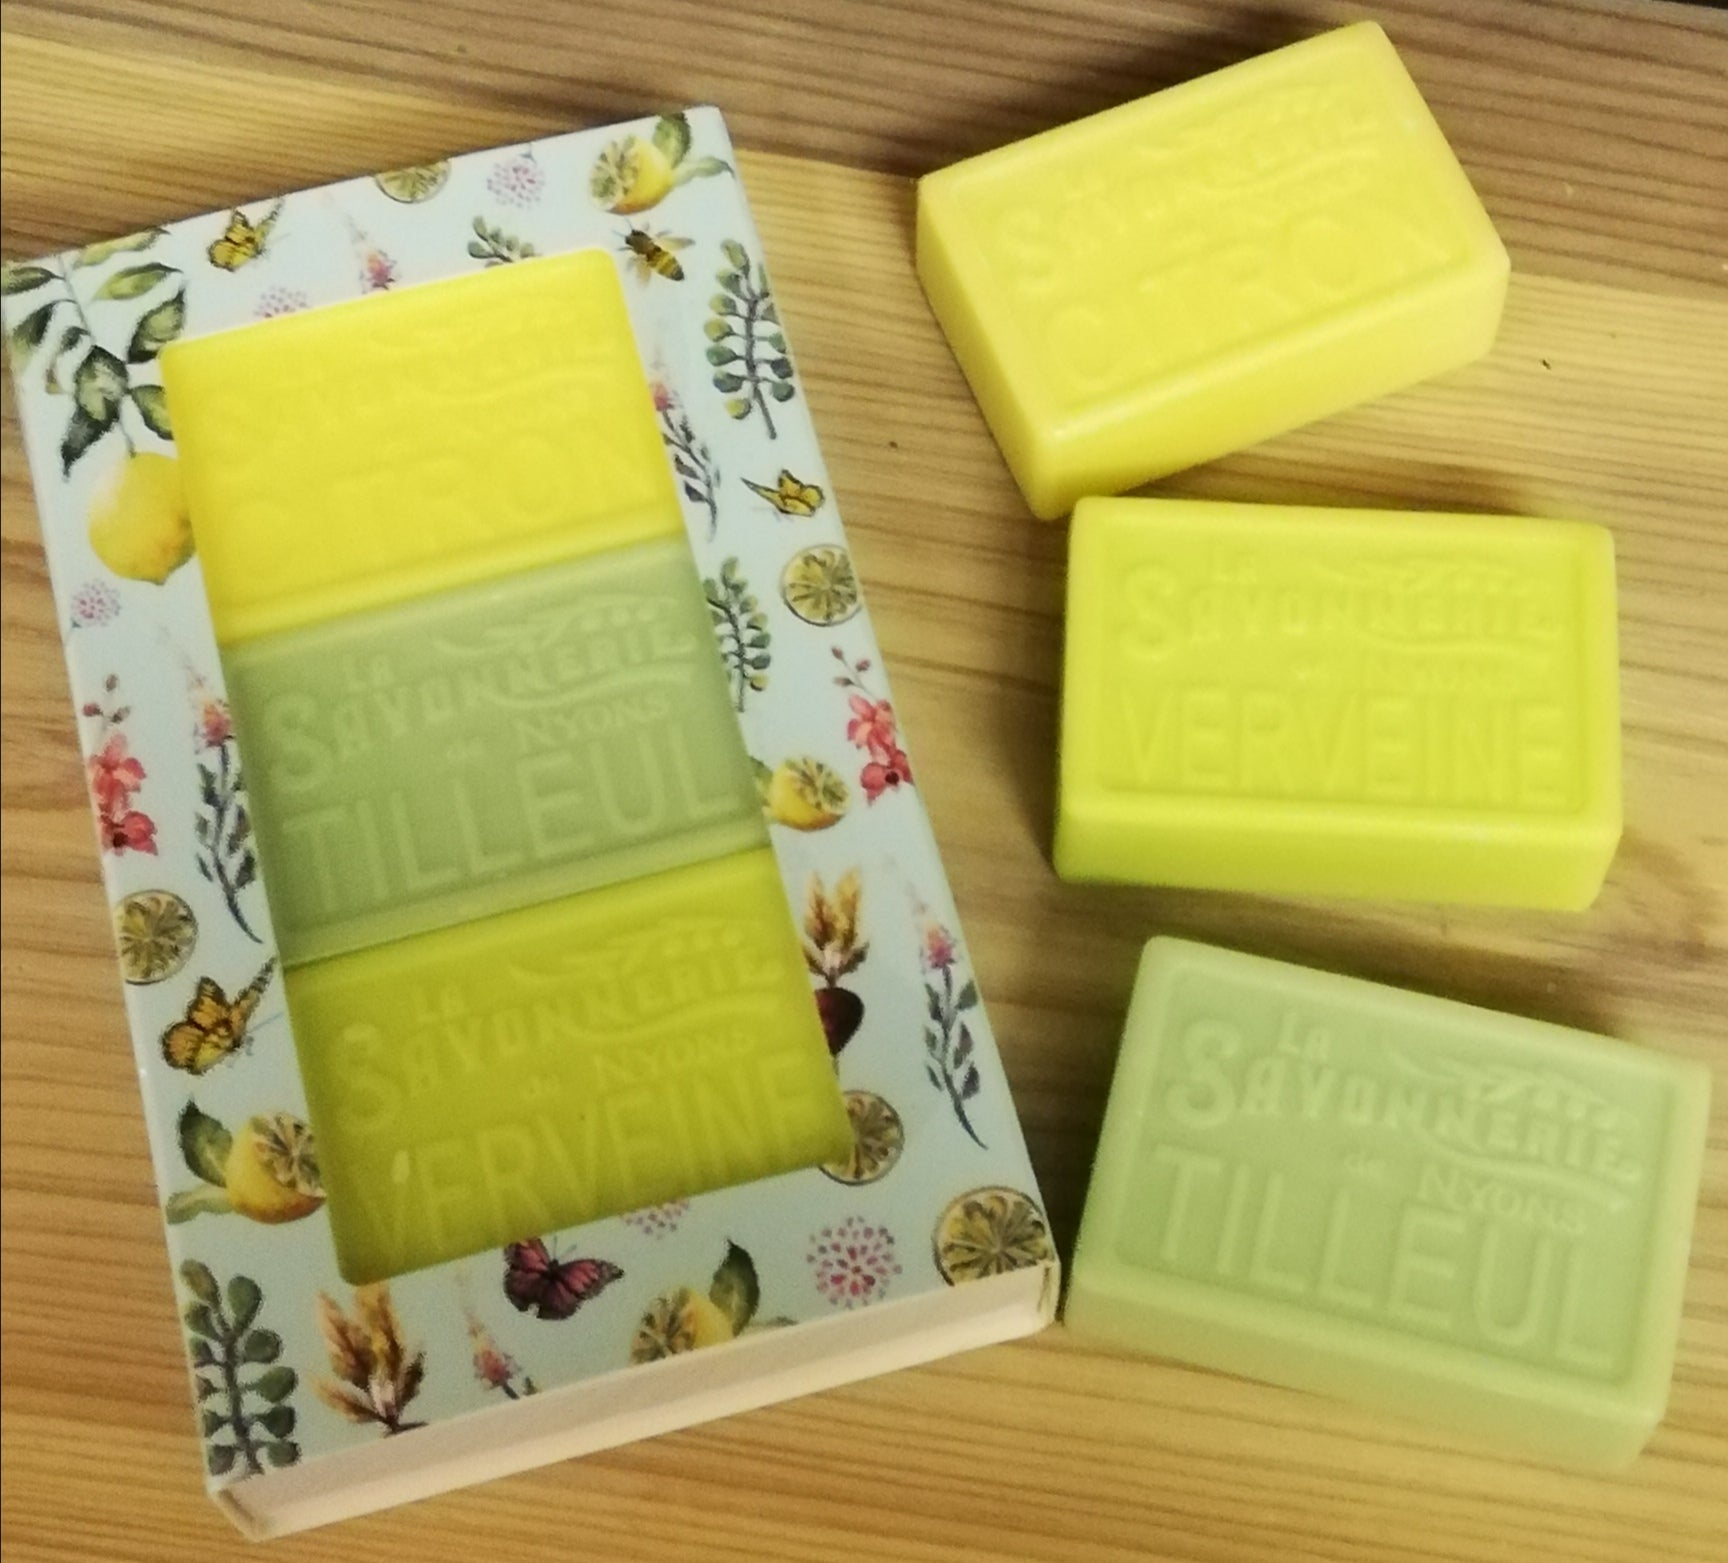 Gift Box of 3 Olive Oil Soaps